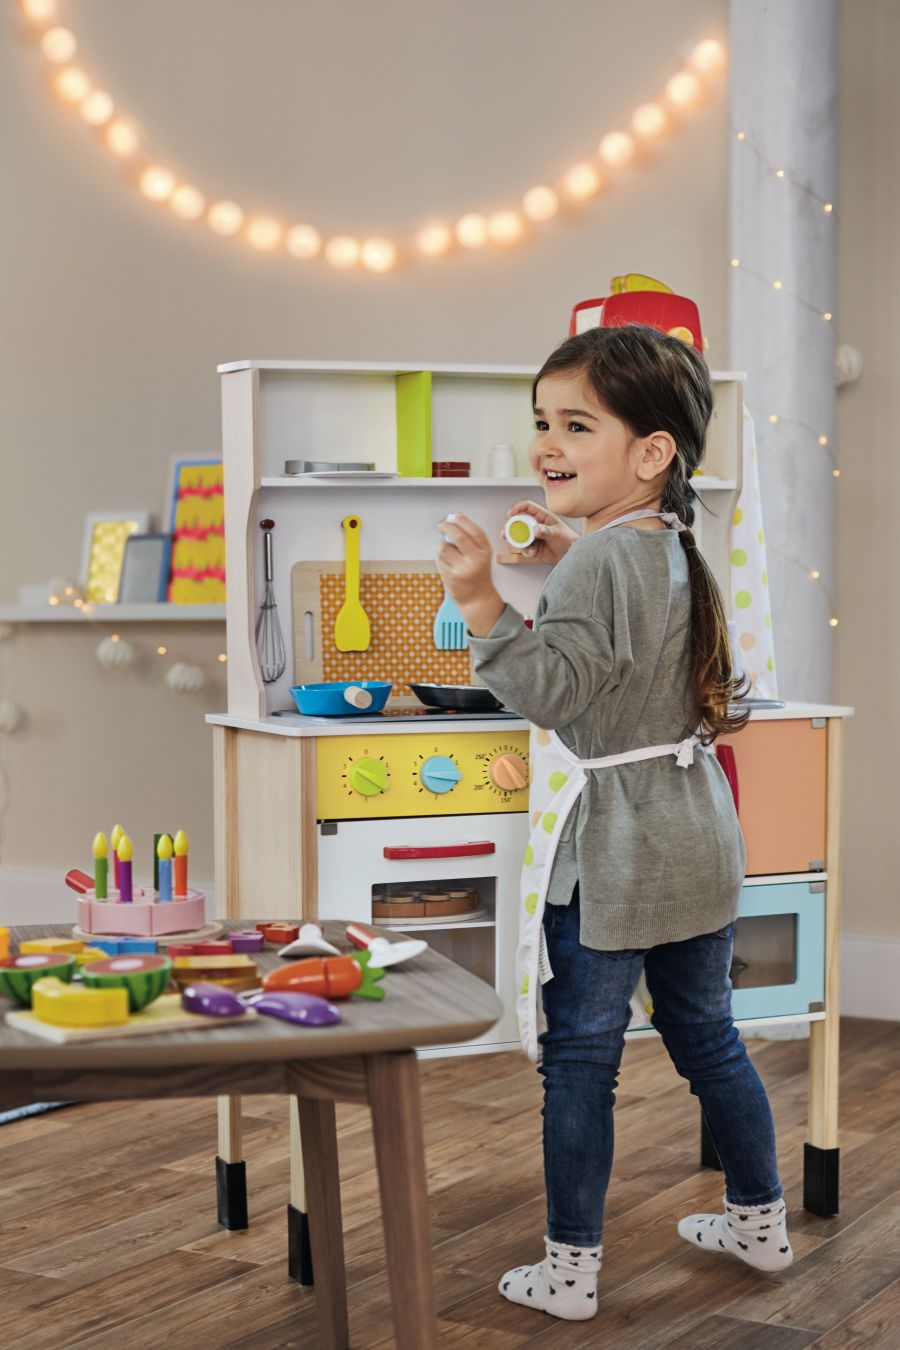 So De Chez Lidl Workin' Jouets Bois La En Collection Girls j4qc3AR5LS